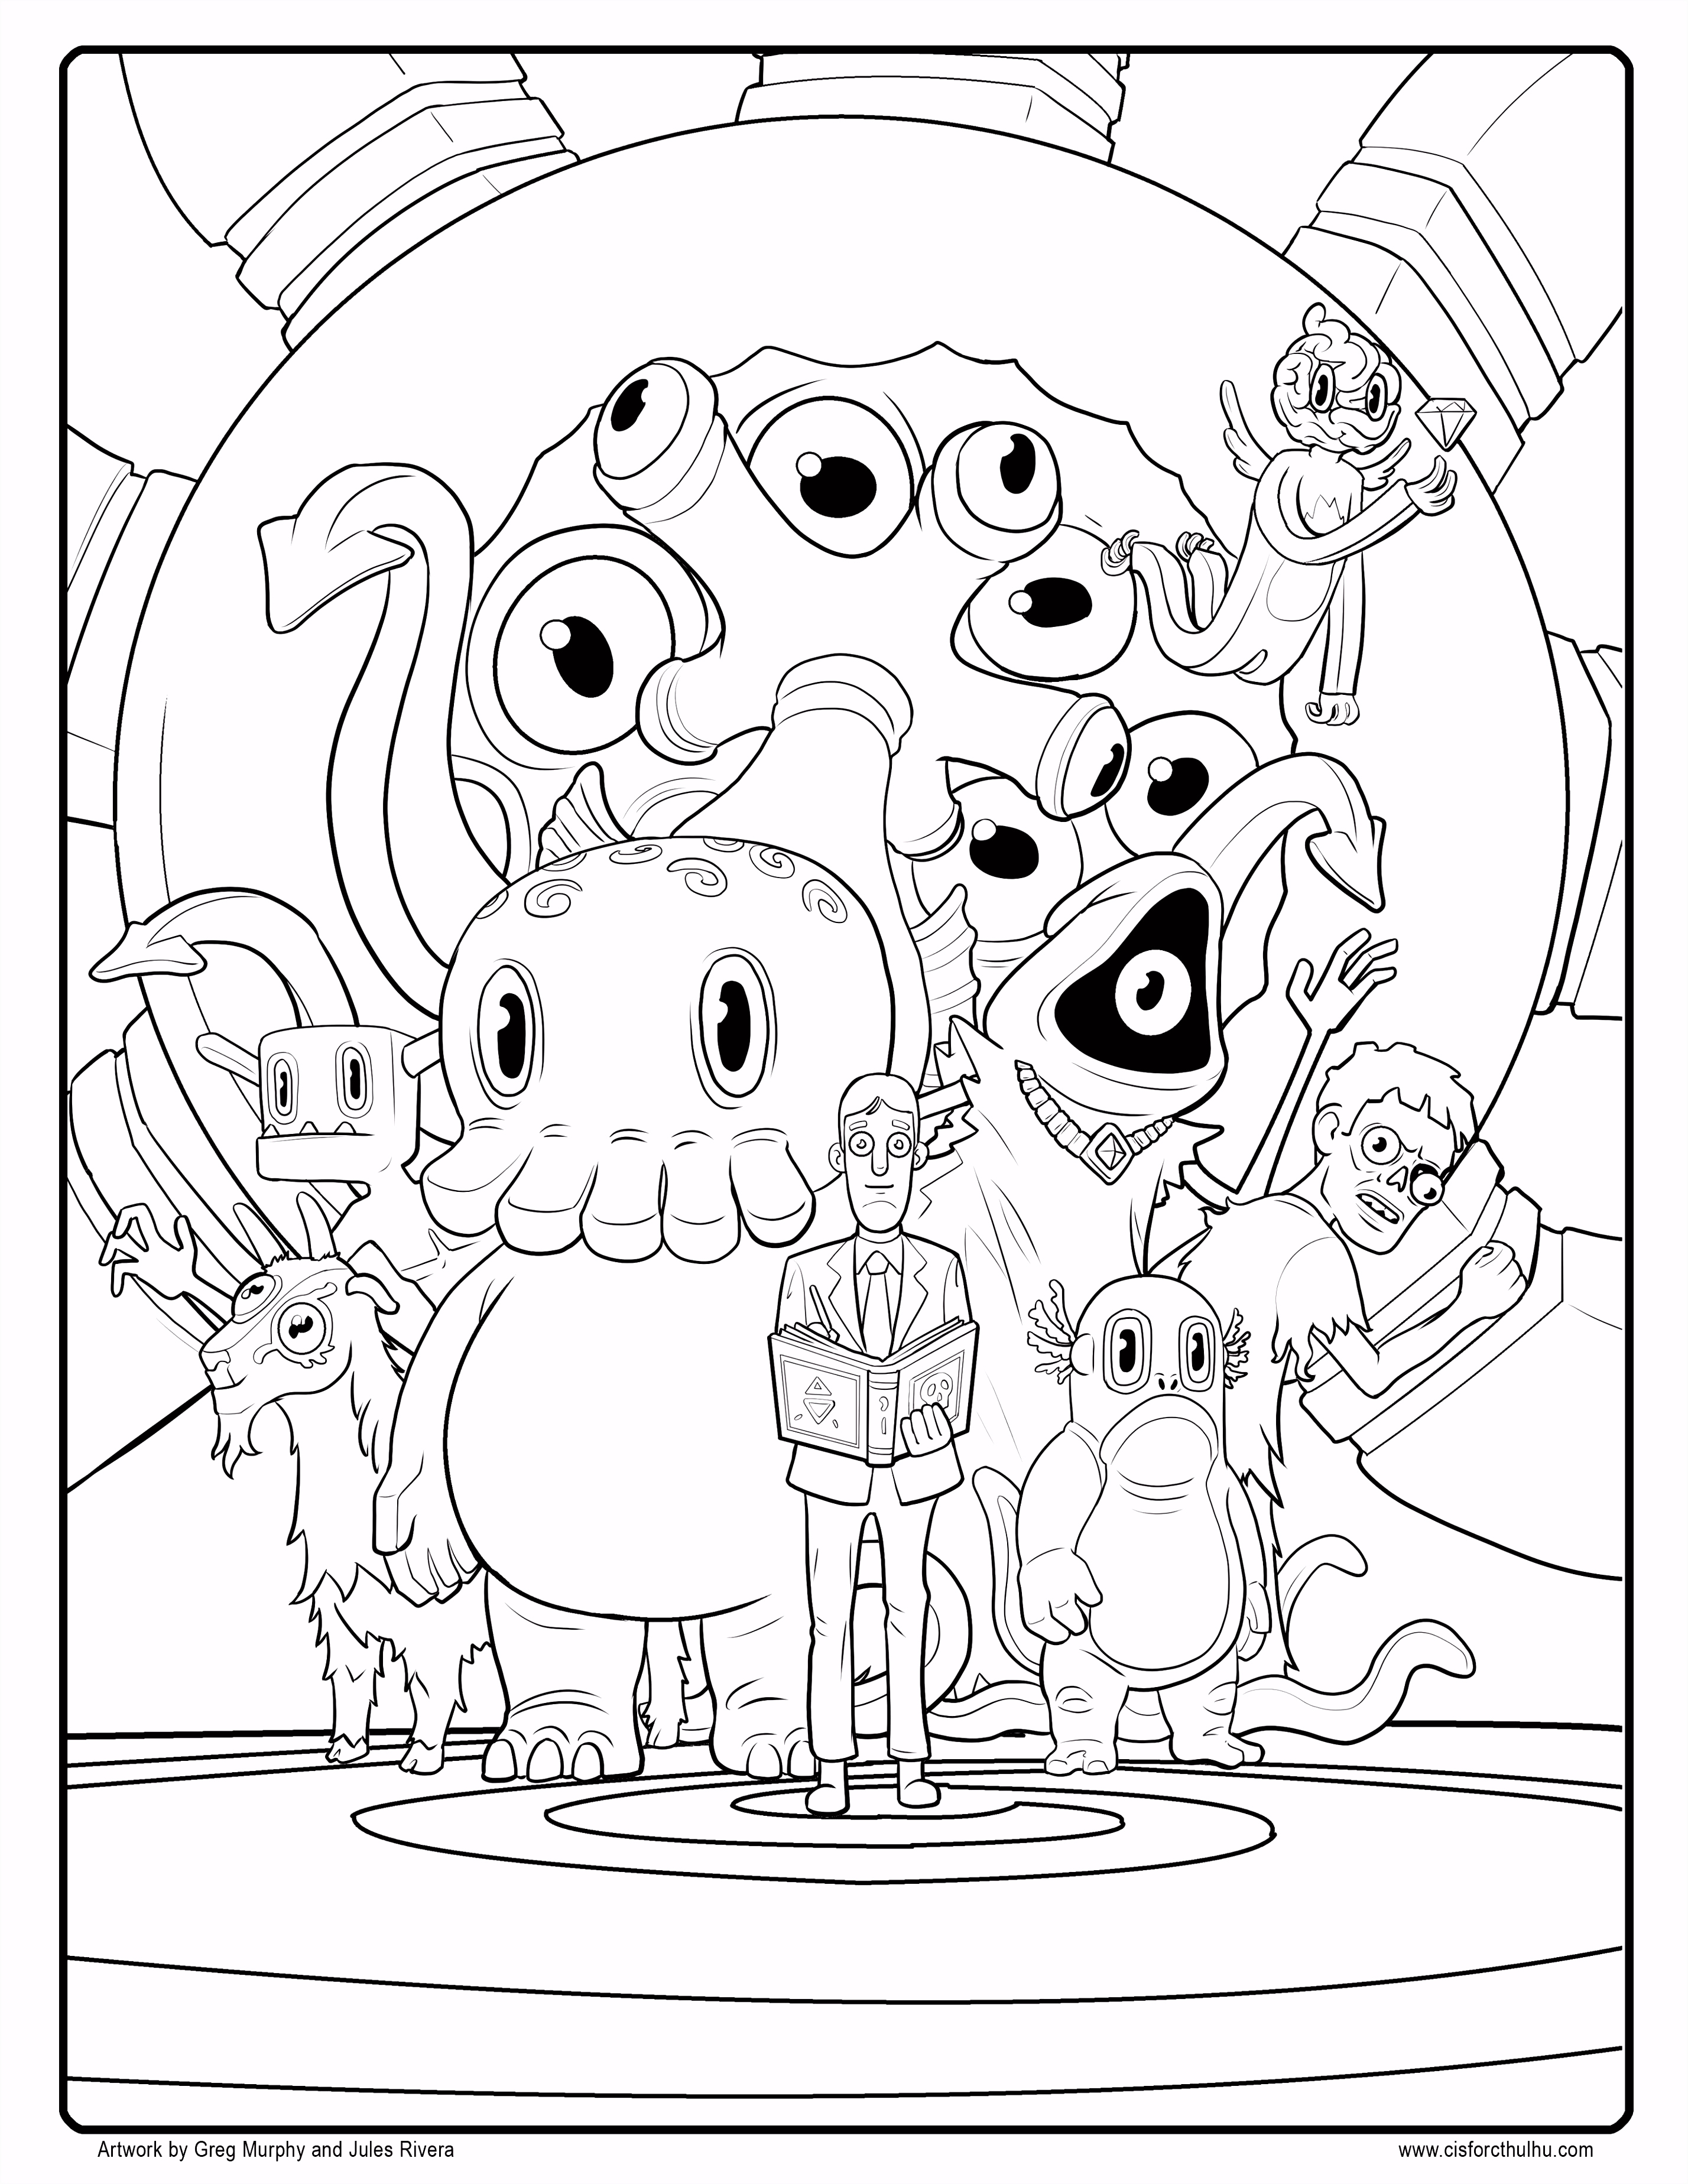 Free C is for Cthulhu Coloring Sheet Cool thulhu